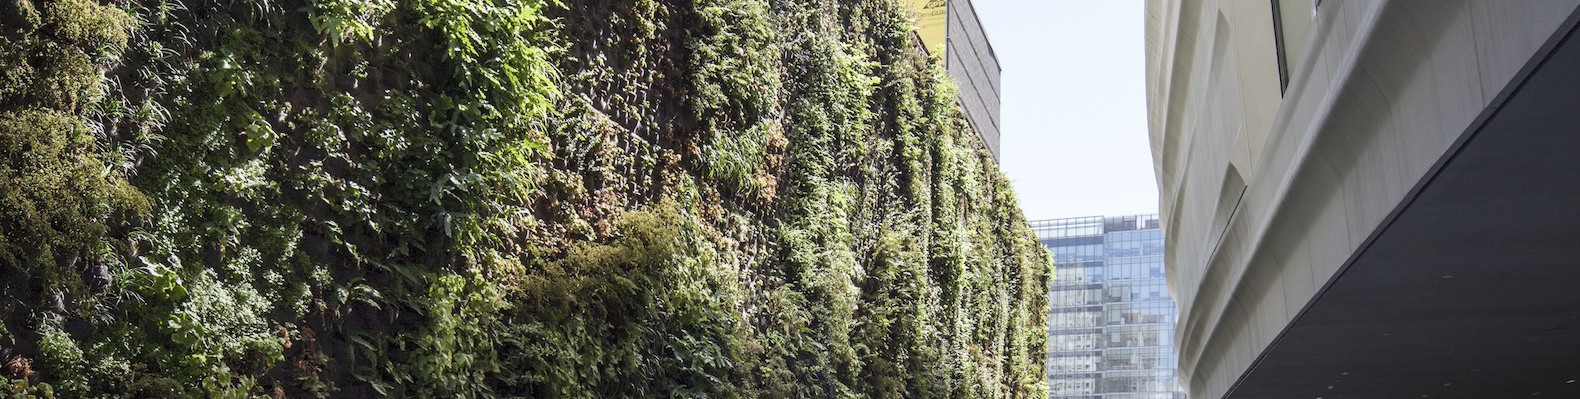 SFMOMA-Living-Wall-by-Habitat-Horticulture-1-1580x399